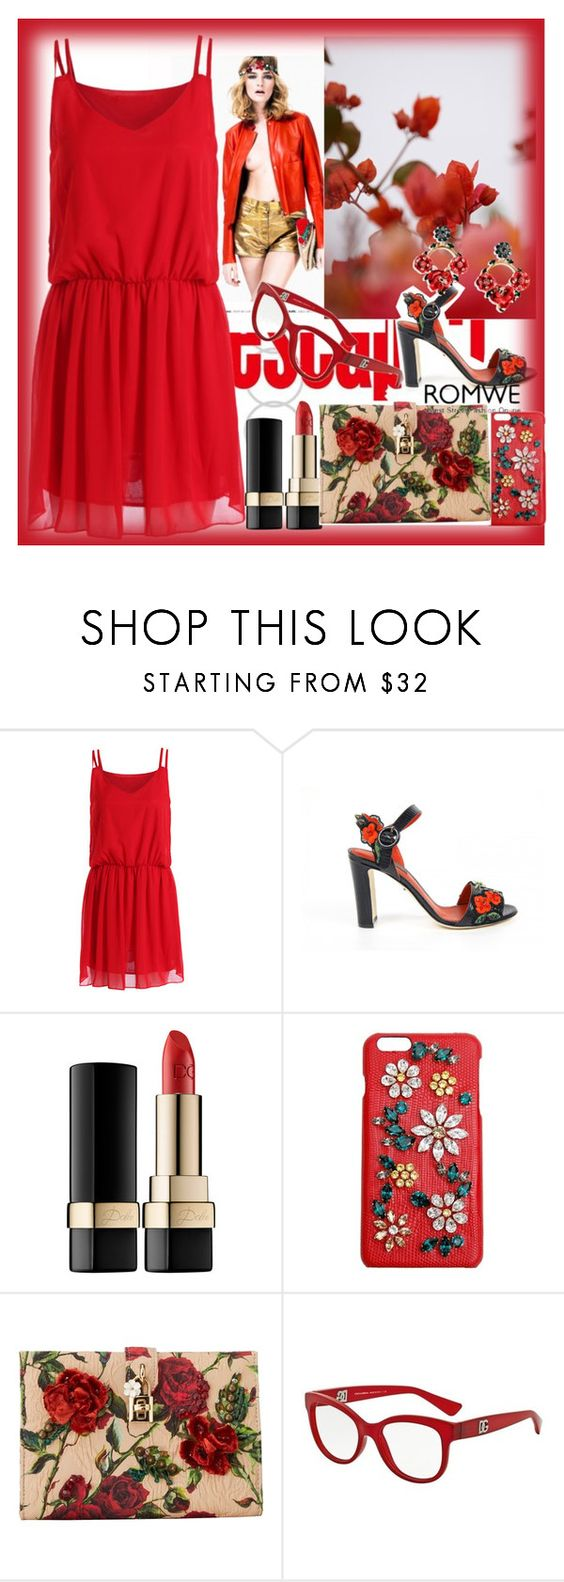 """Romwe"" by loveliest-back ❤ liked on Polyvore featuring GUINEVERE and Dolce&Gabbana"